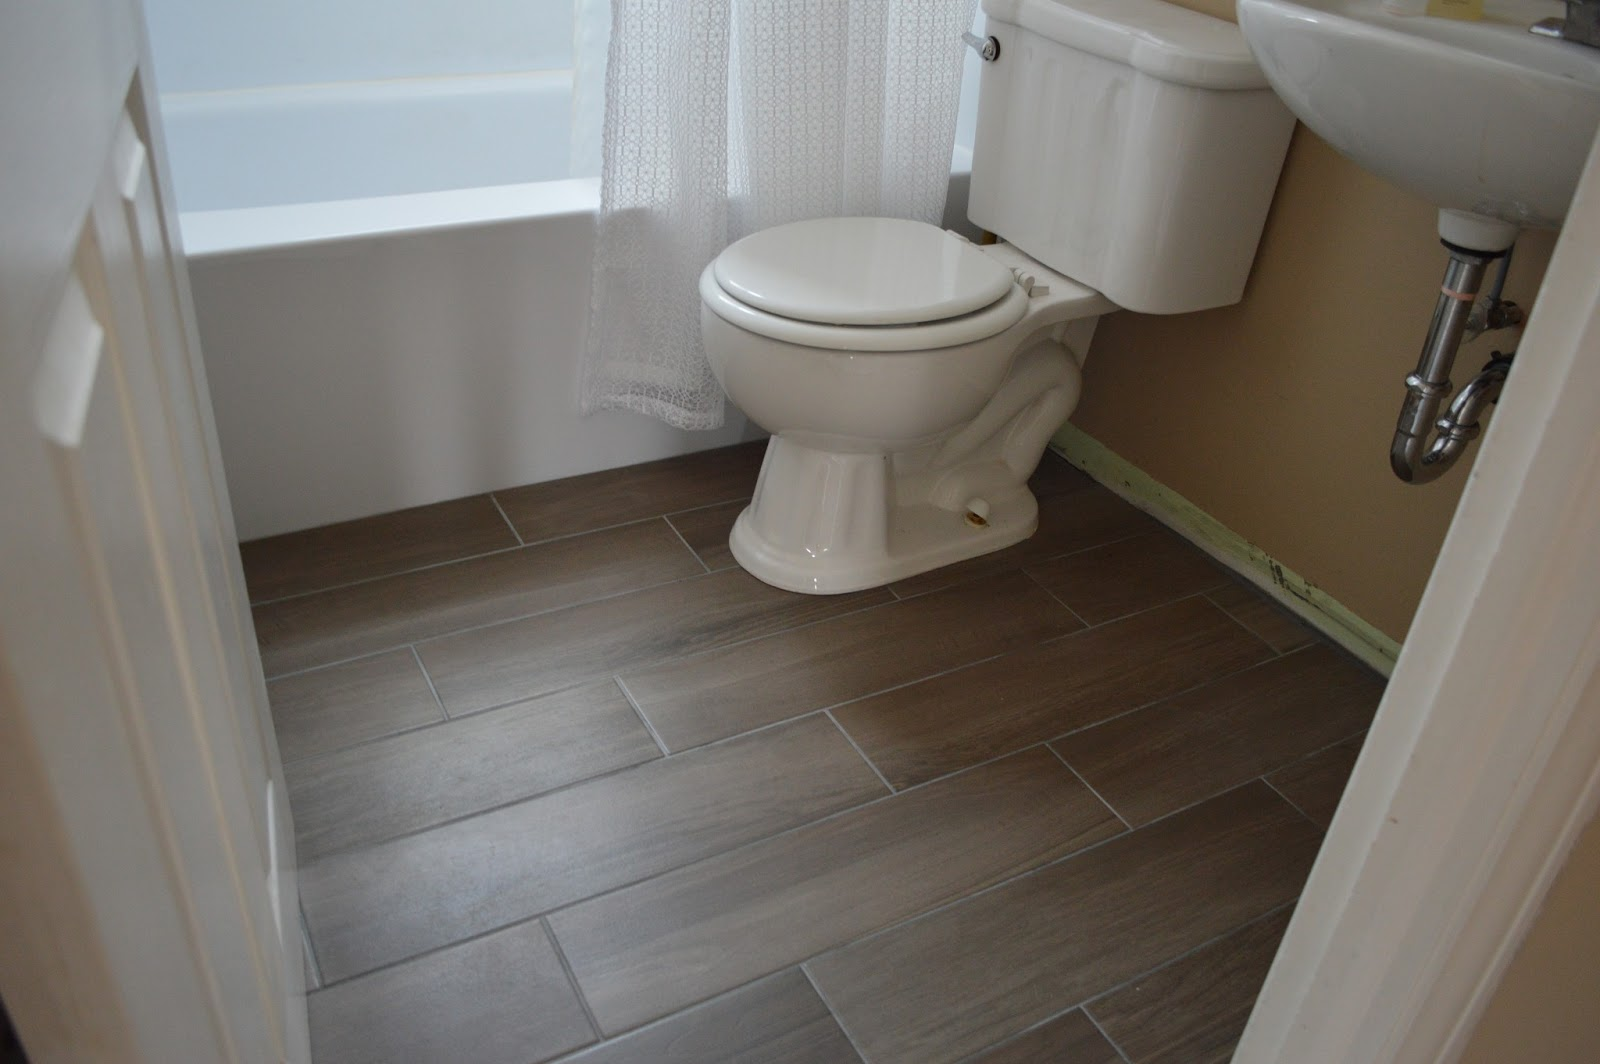 27 ideas and pictures of wood or tile baseboard in bathroom 16 17 18 19 20 11 dailygadgetfo Gallery